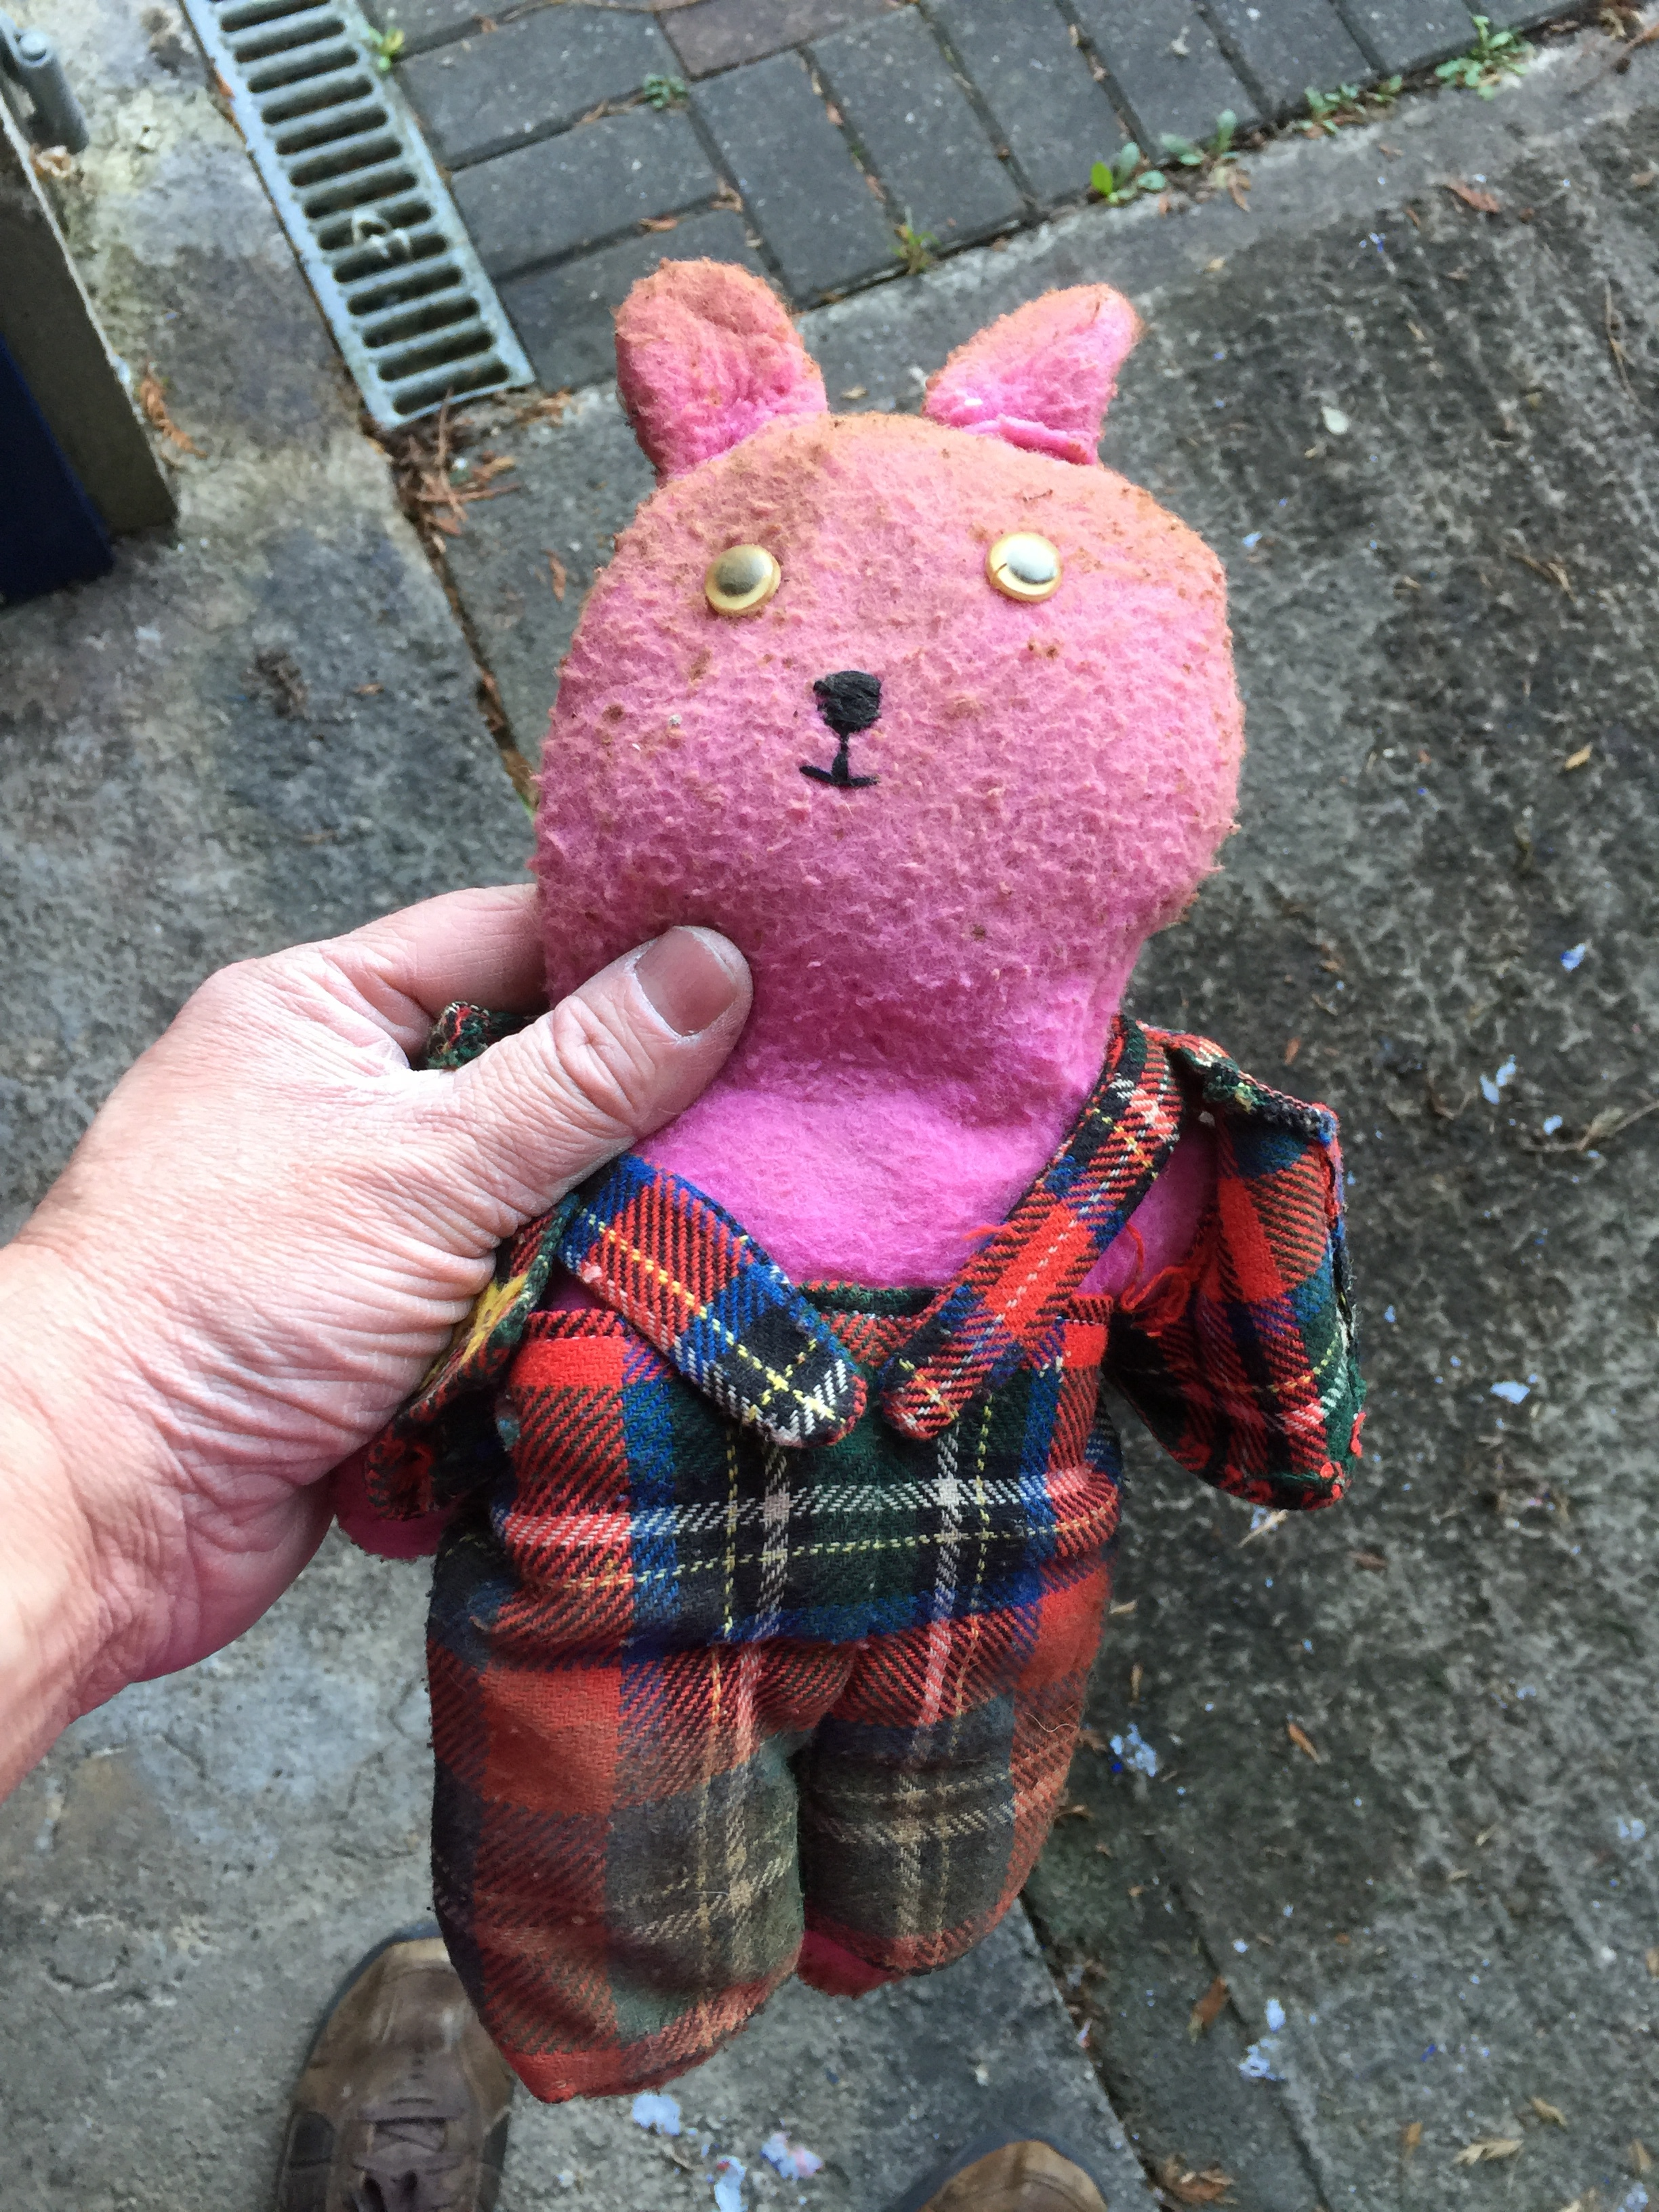 my old teddy bear from the 1970s, recovered from the garage clearance